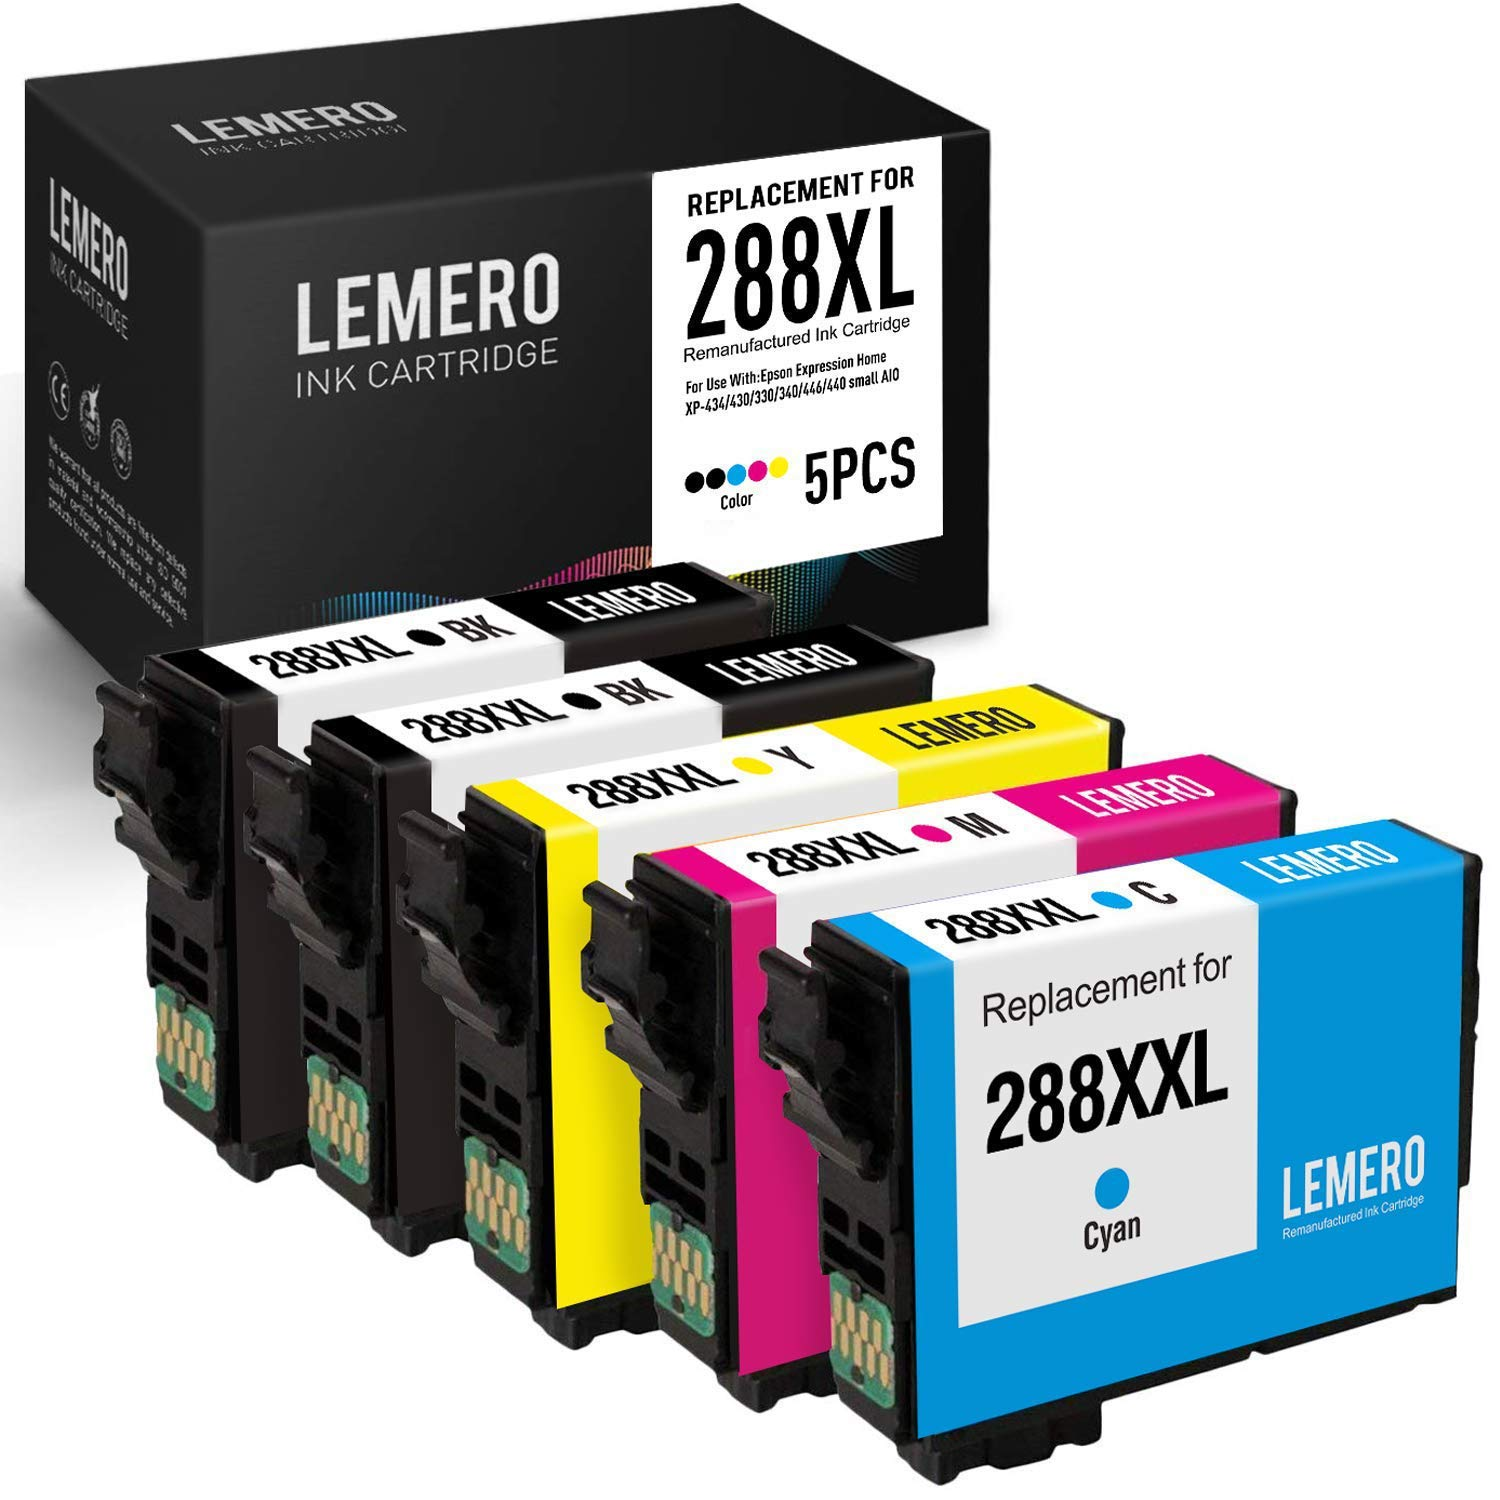 LEMERO Remanufactured for Epson 288XL 288 XL 288 Ink Cartridges -  Replacement for Epson Expression XP-330 XP-430 XP-340 XP-440 XP-434 XP-446  (5 Pack)